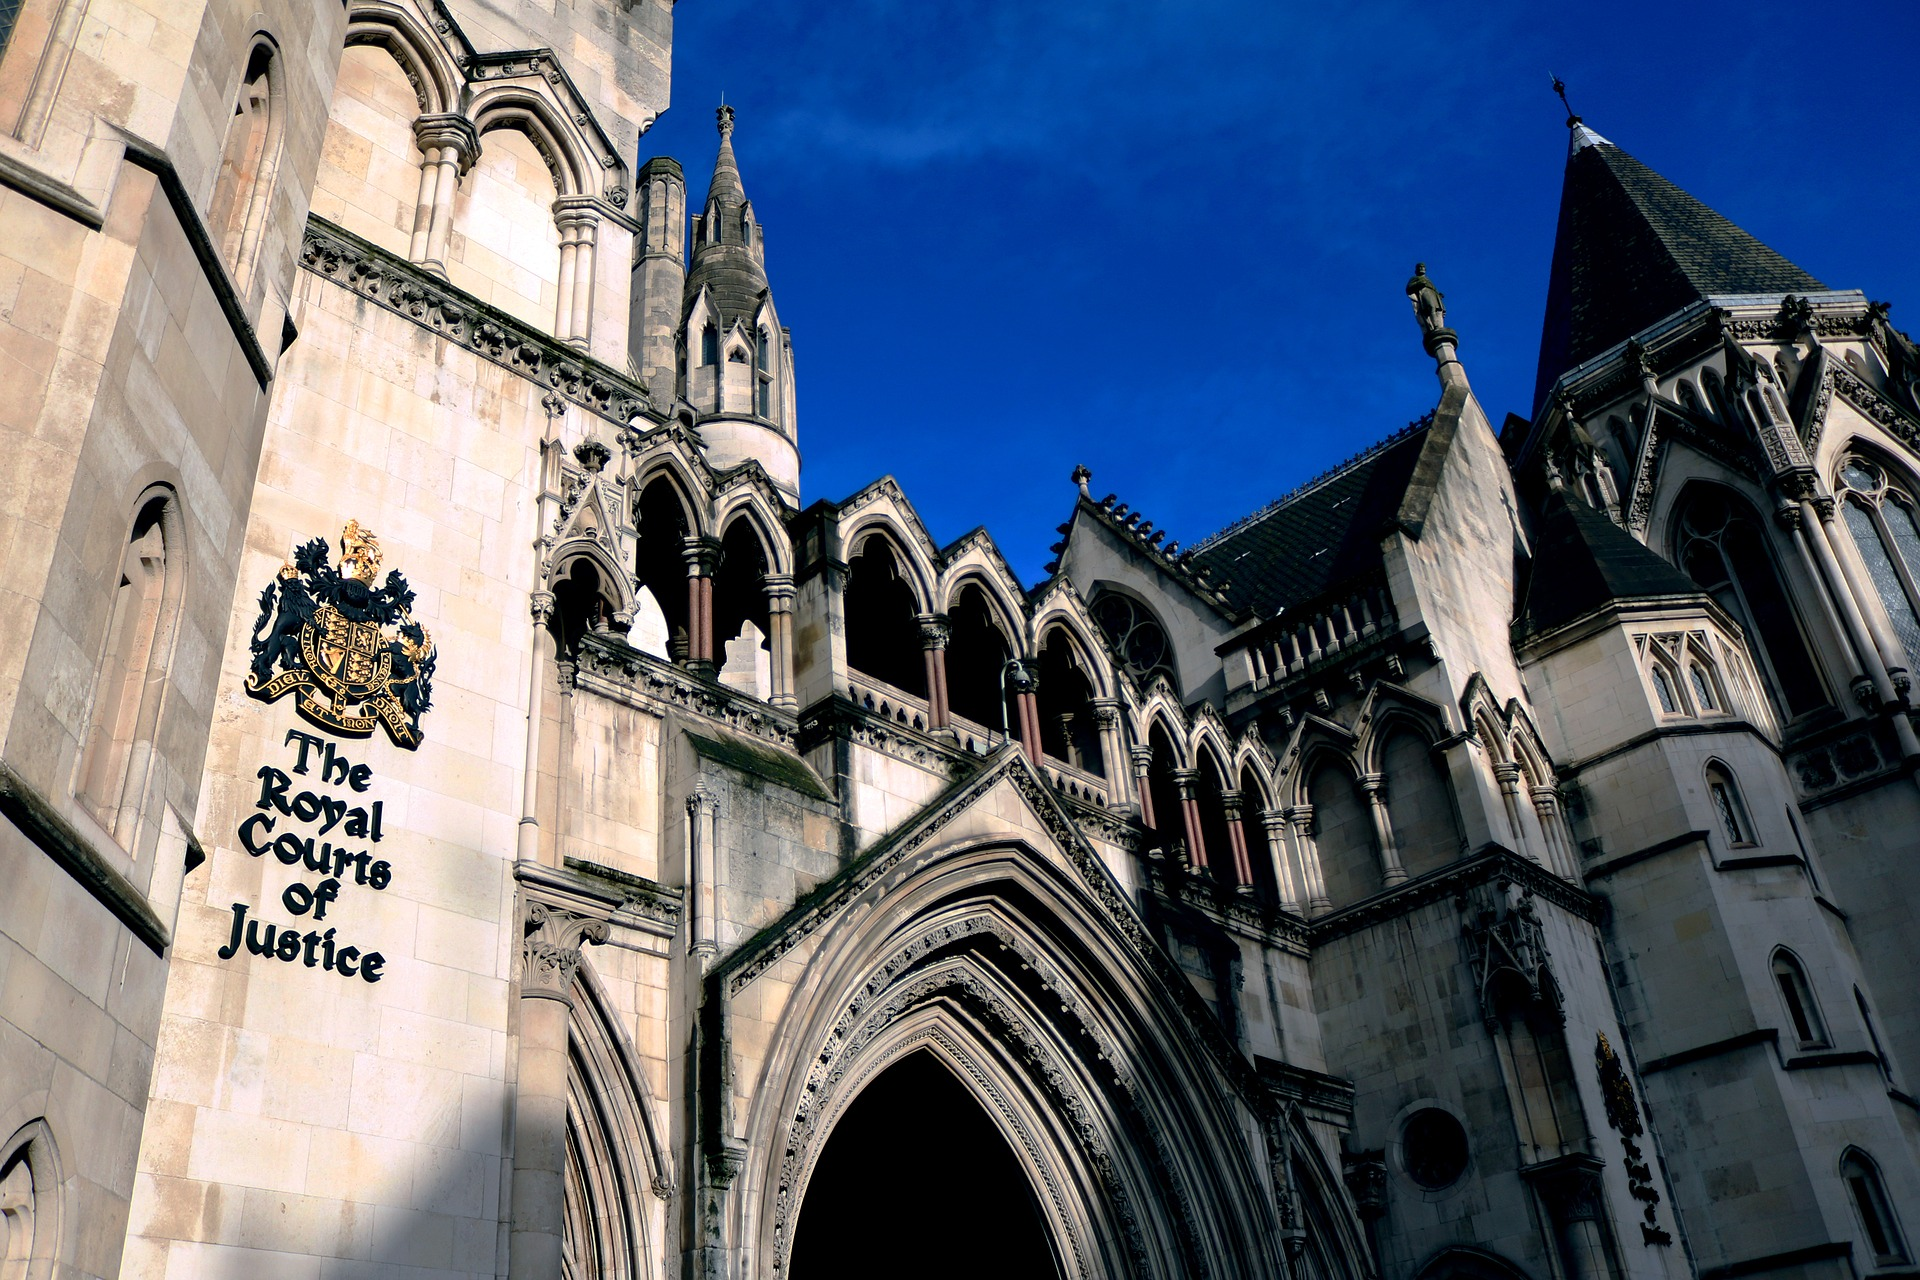 the-royal-courts-of-justice-1648944_1920.jpg